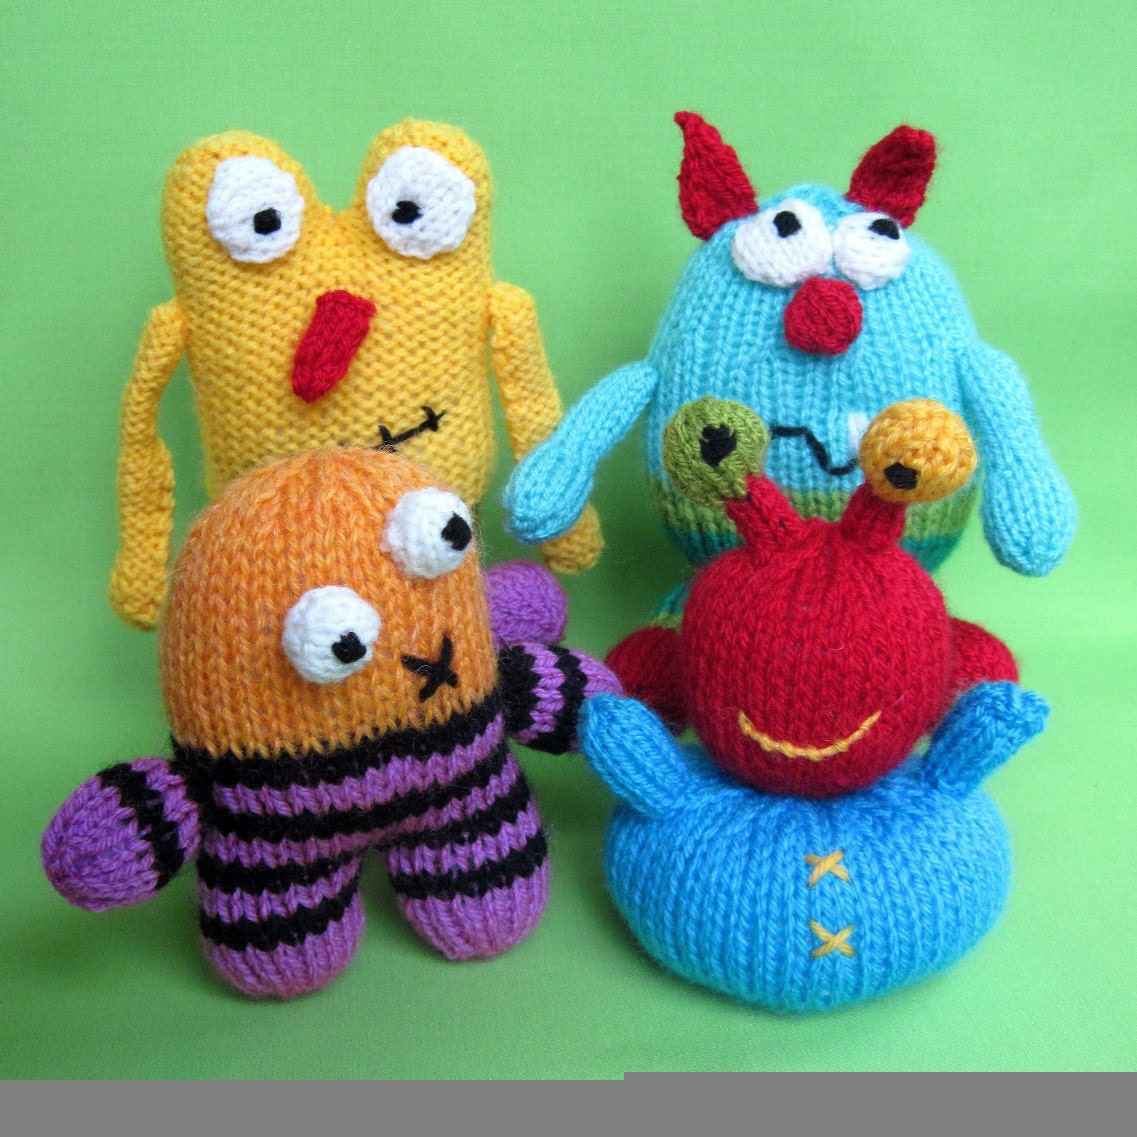 Little Monsters knitted toy INSTANT DOWNLOAD PDF by toyshelf